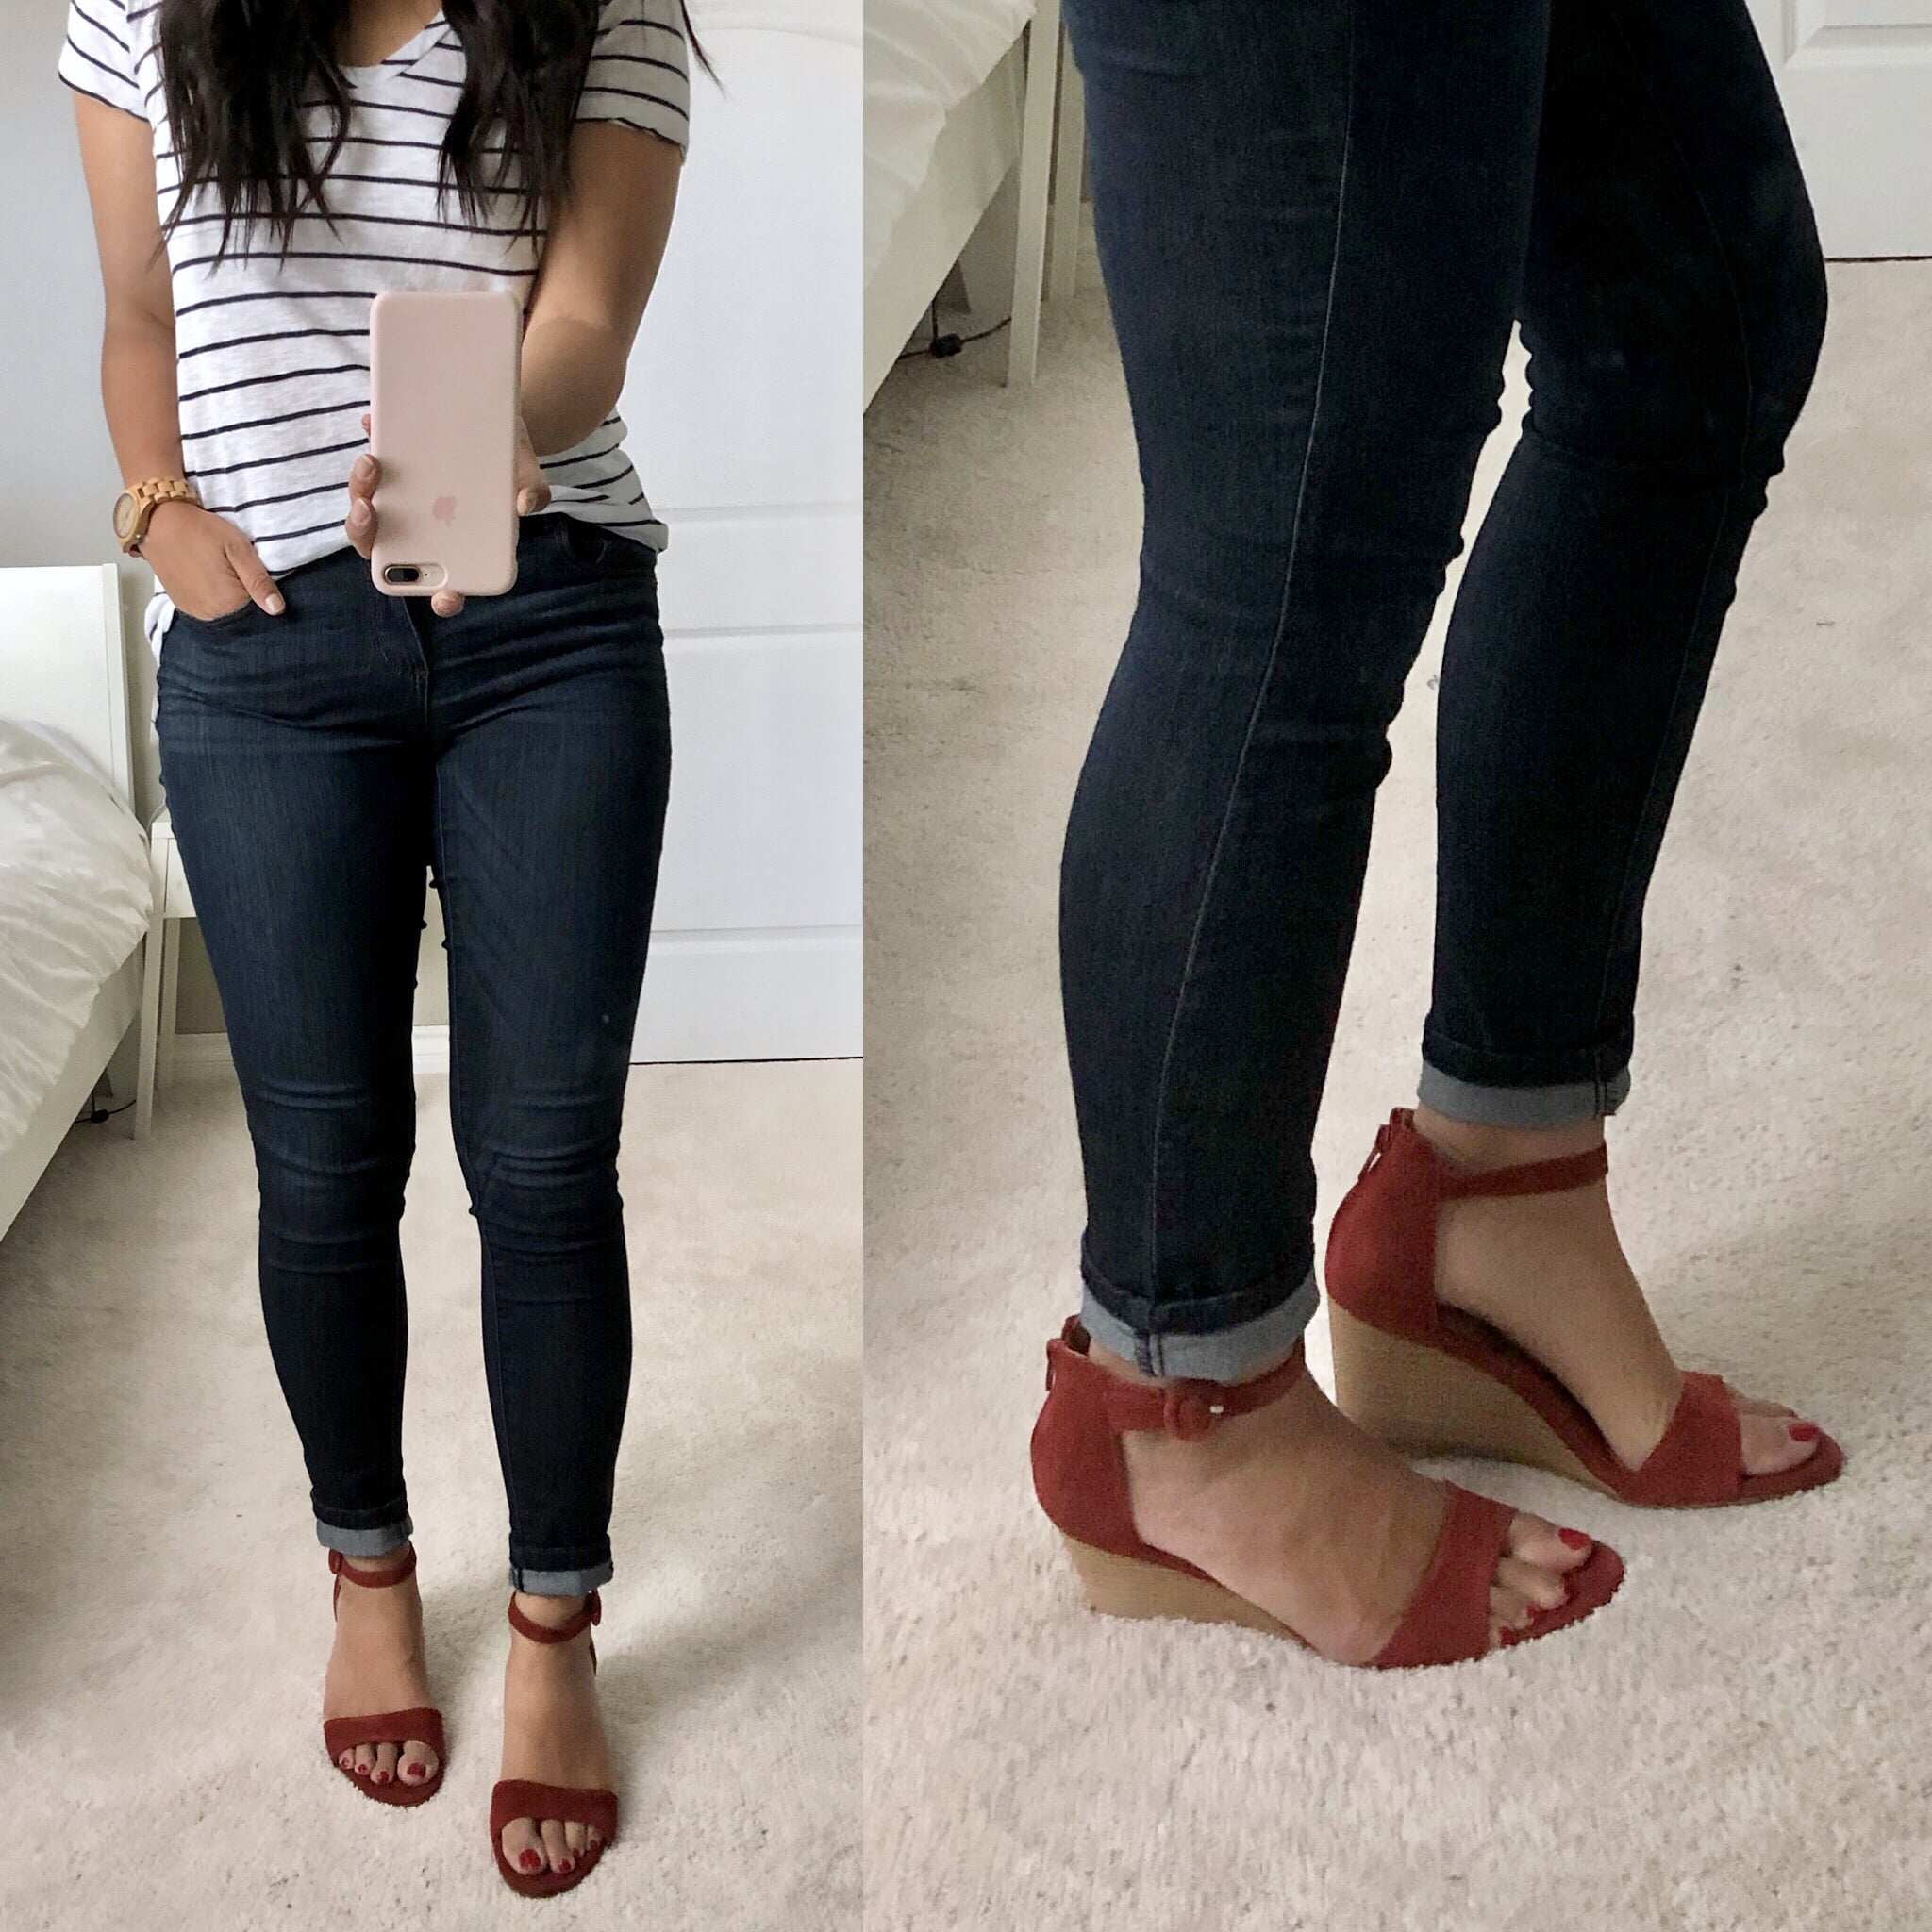 Red Wedges Review